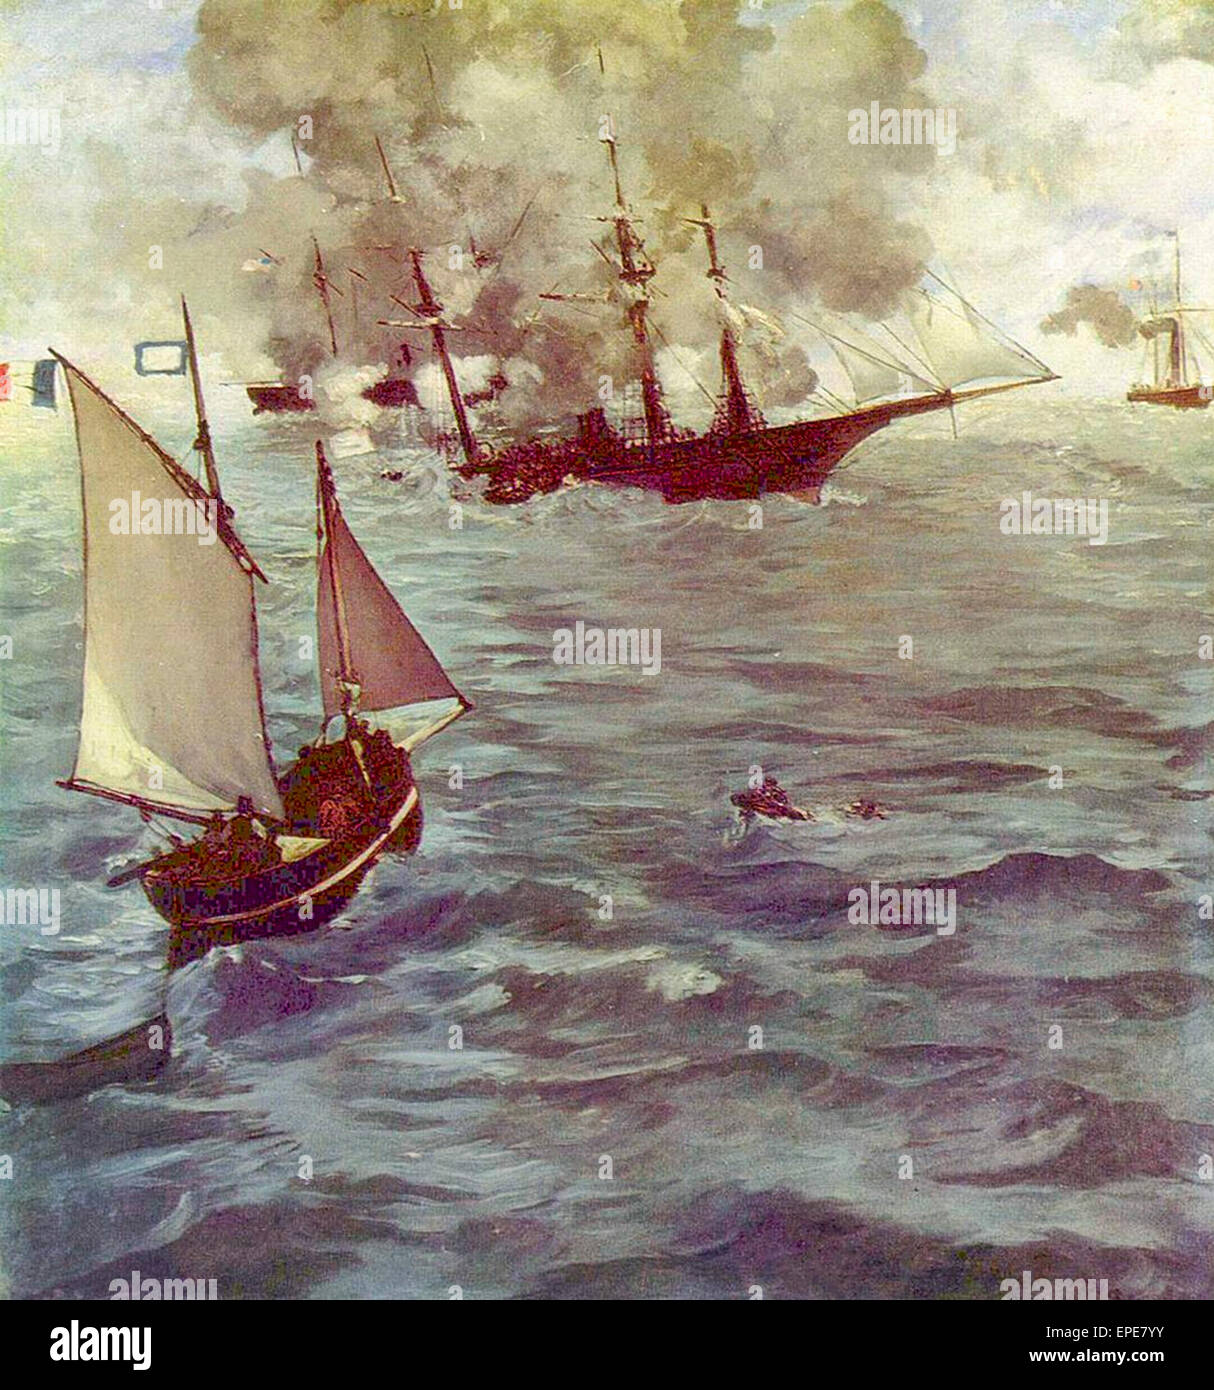 The Battle of the Kearsarge and the Alabama, 1864  Édouard Manet. - Stock Image